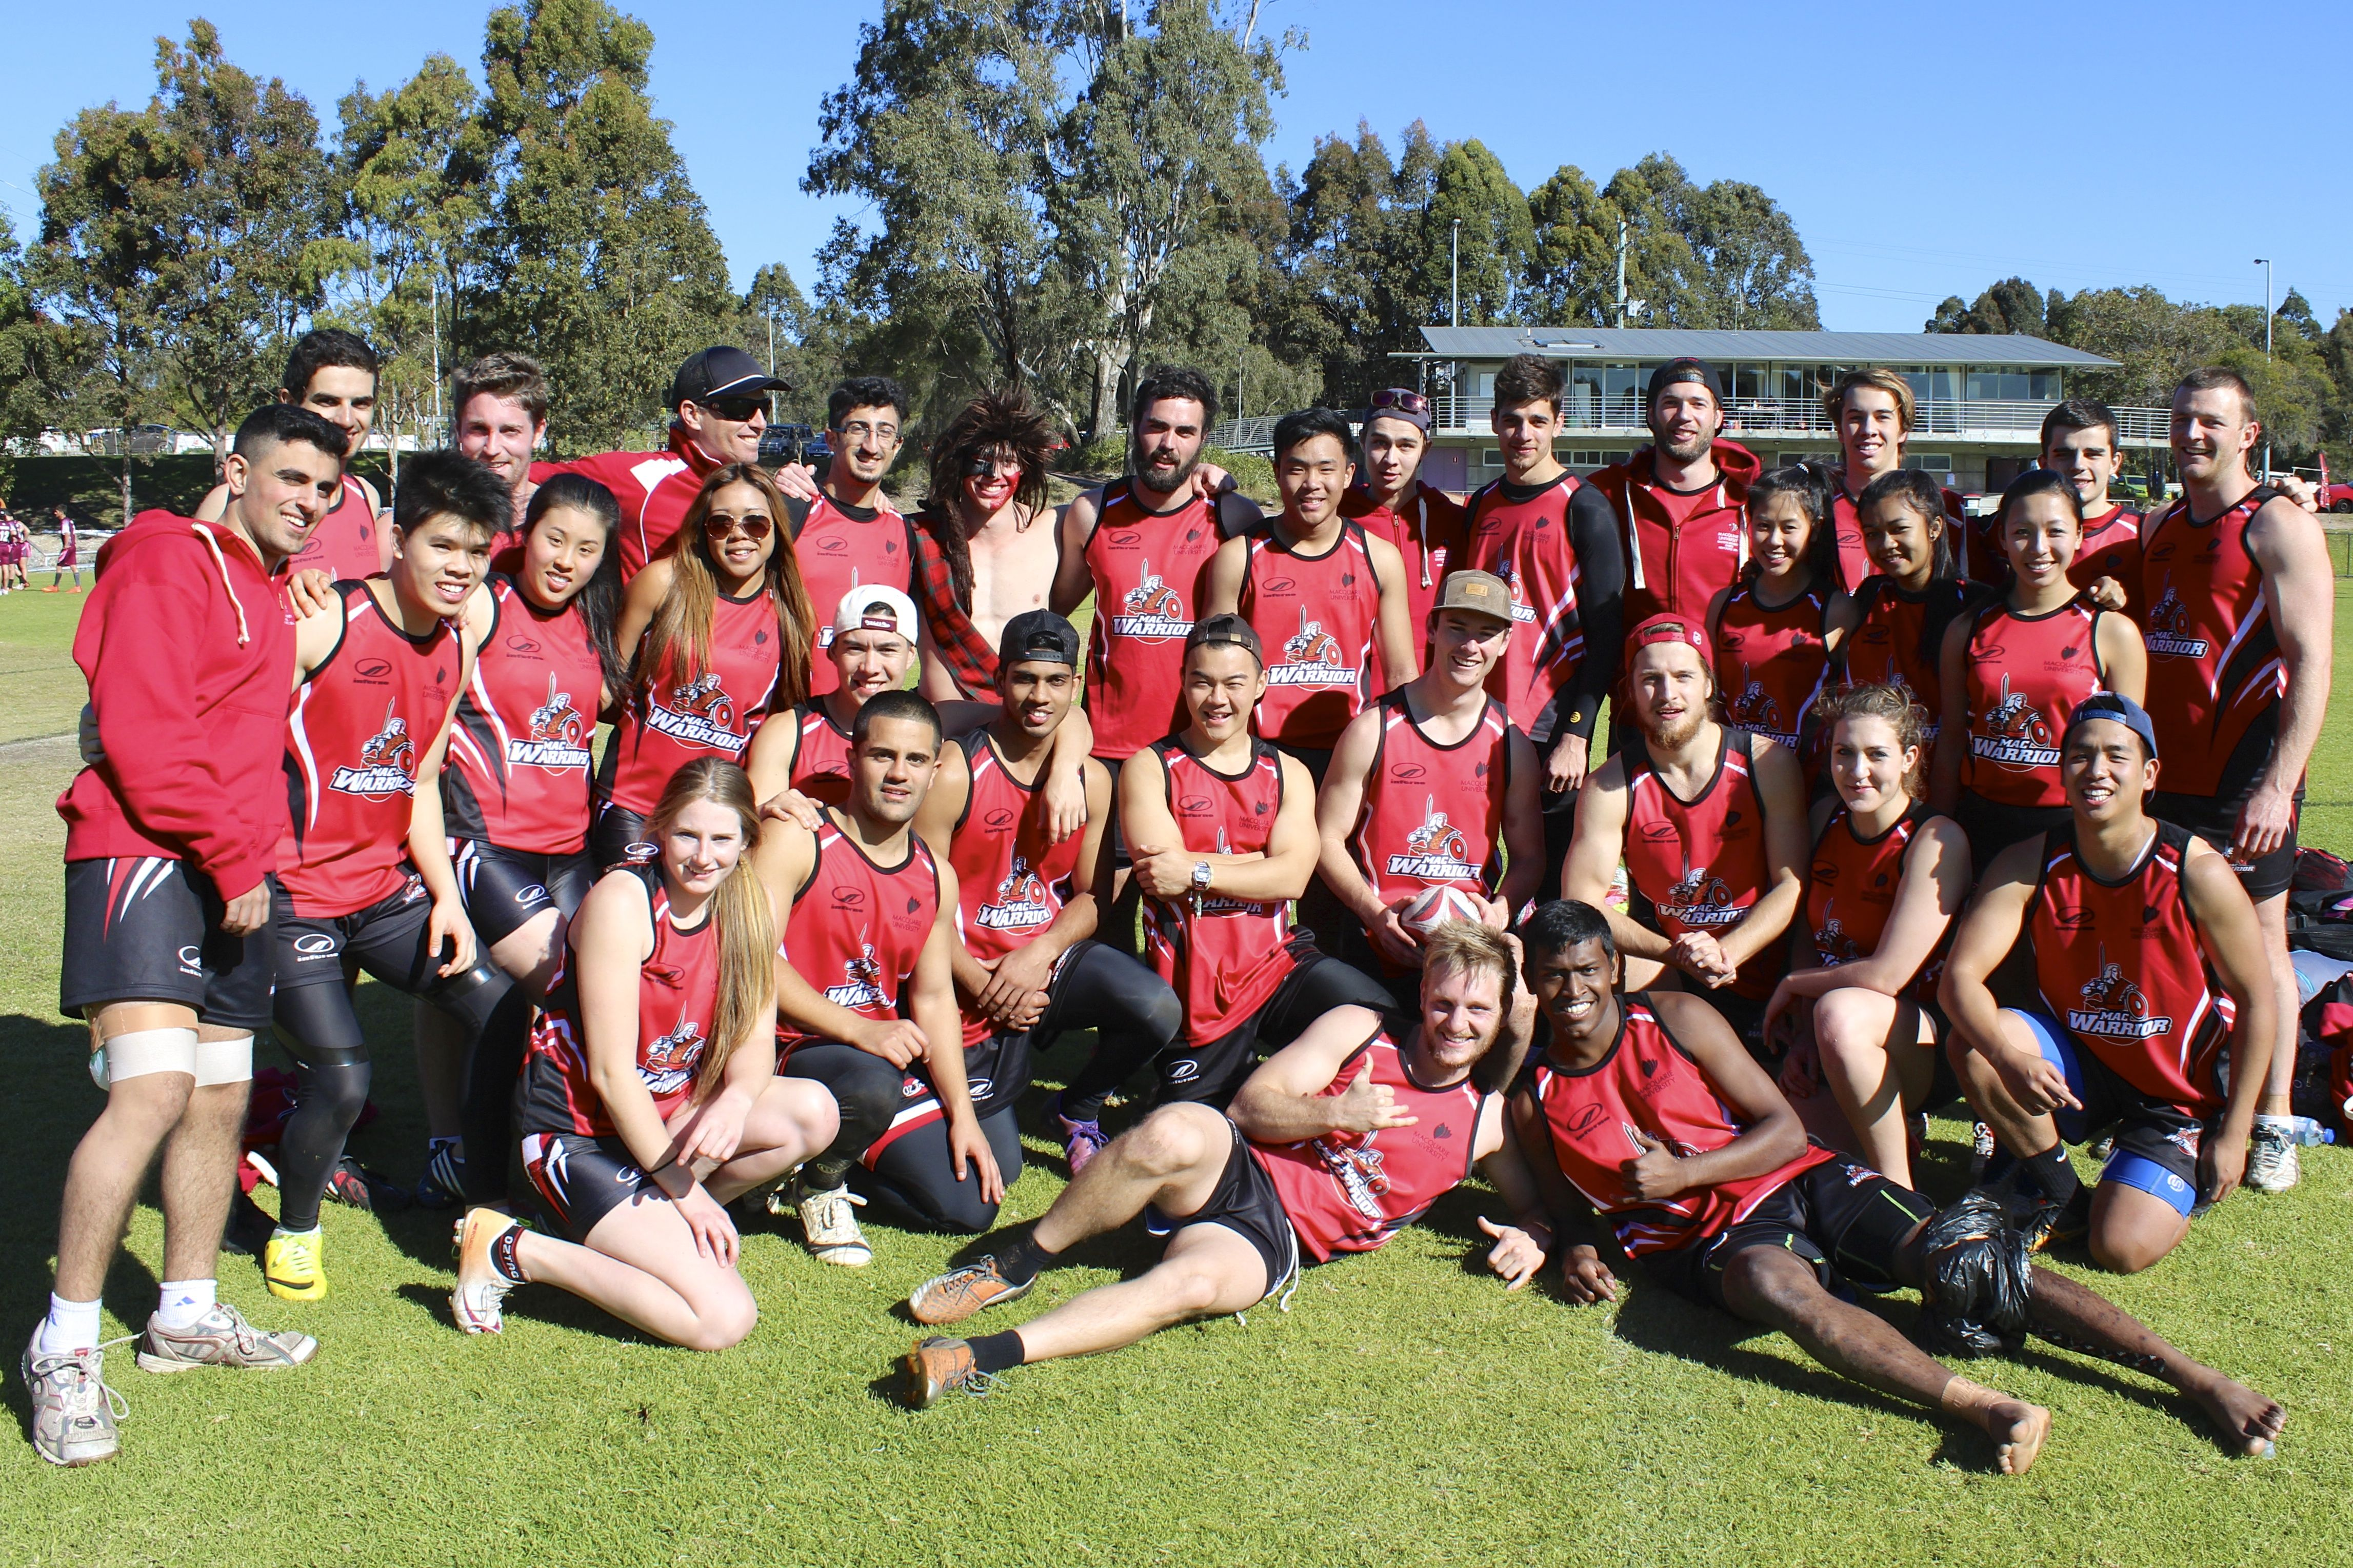 Macquarie University's Oztag teams won bronze and silver at the Eastern University Games.